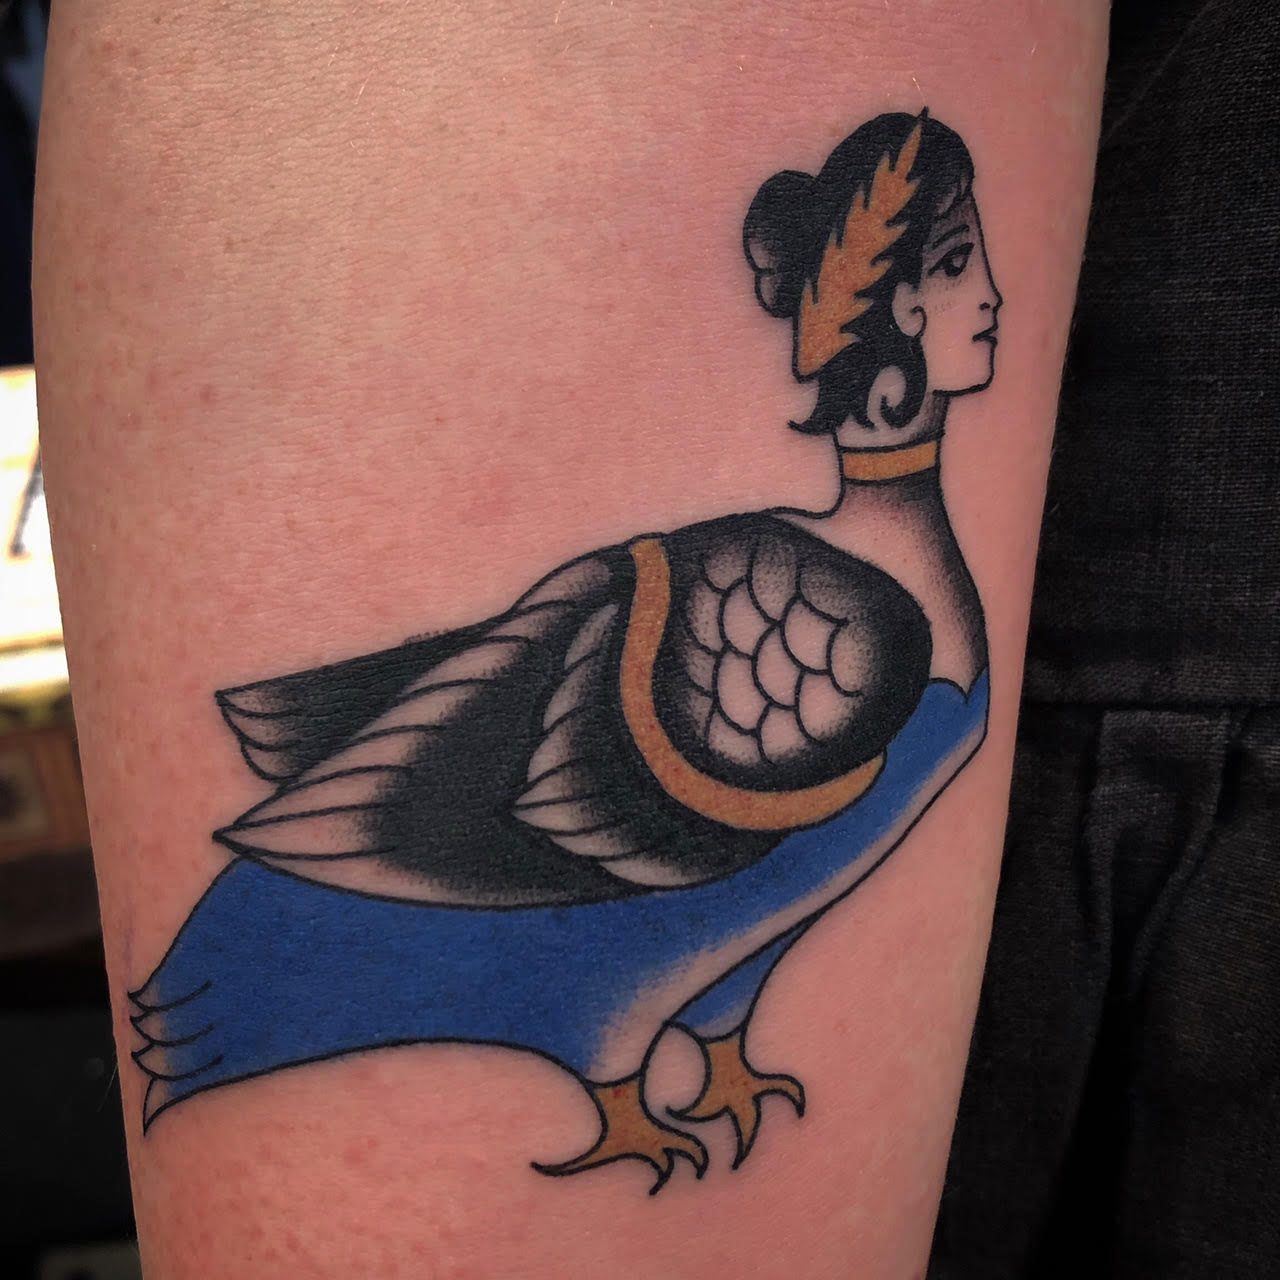 pigeon bird lady hybrid tattoo tattooed in a european traditional style